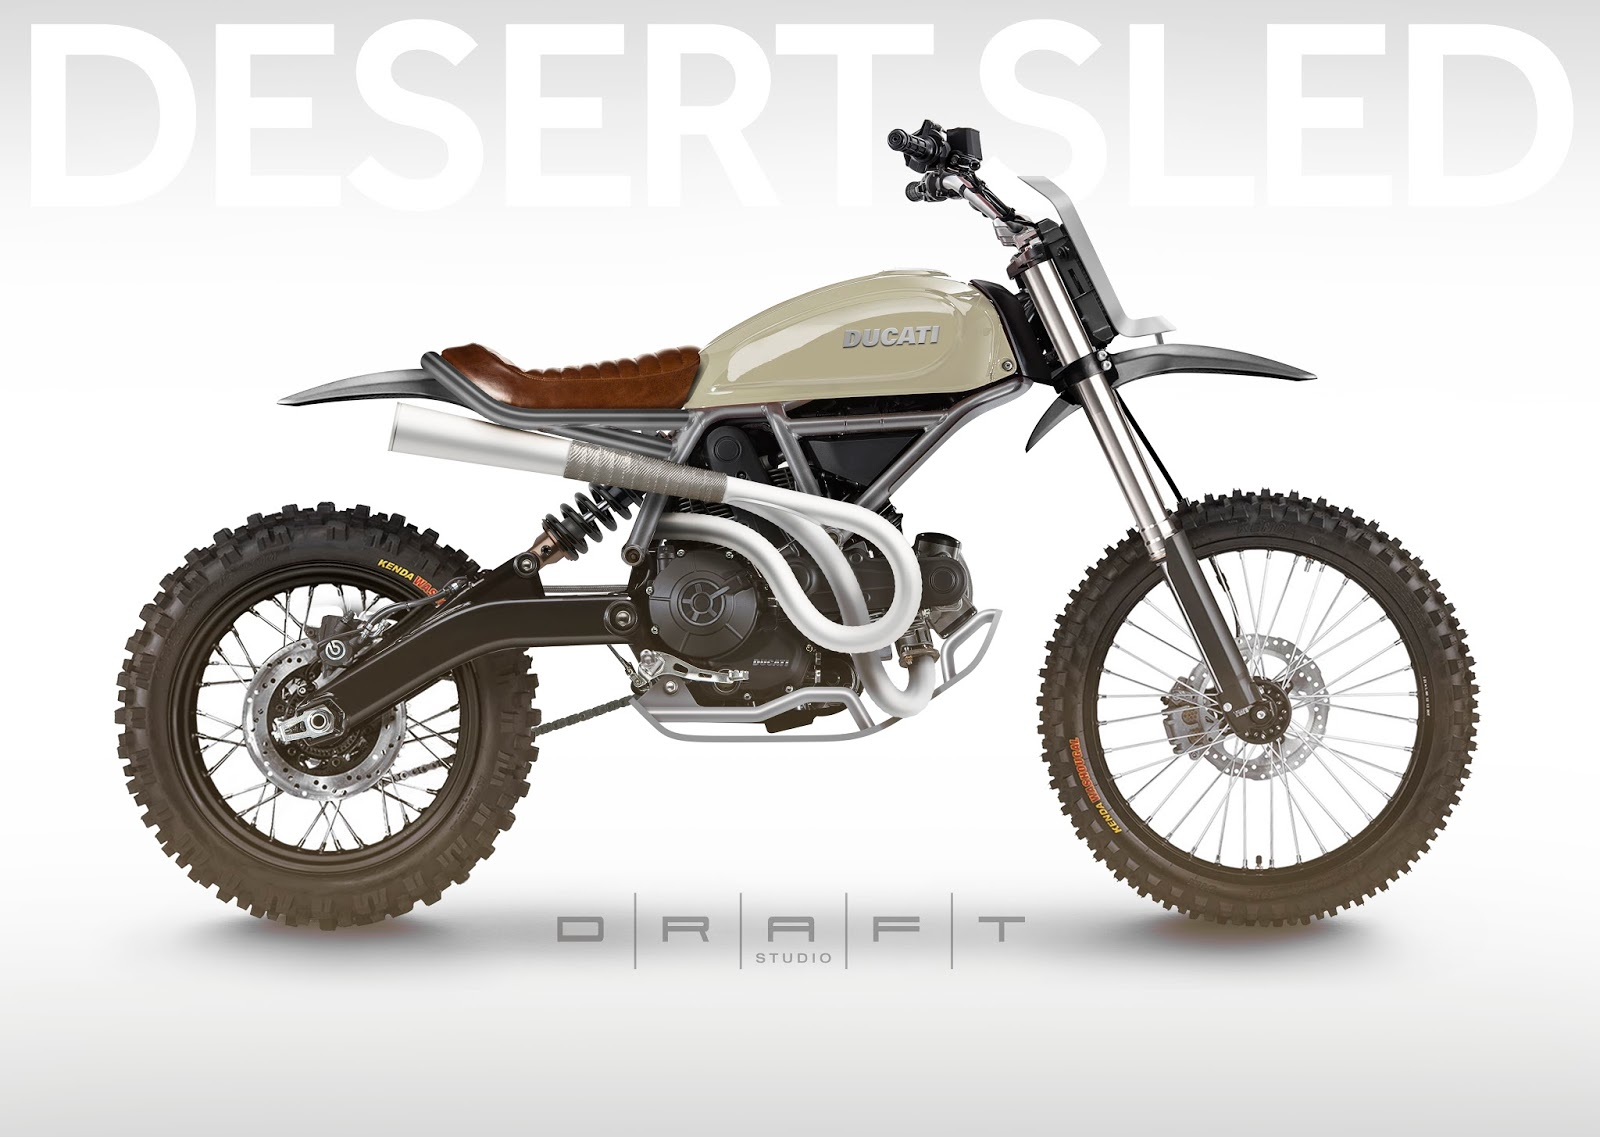 moto mucci art design ducati sixty2 desert sled concept. Black Bedroom Furniture Sets. Home Design Ideas